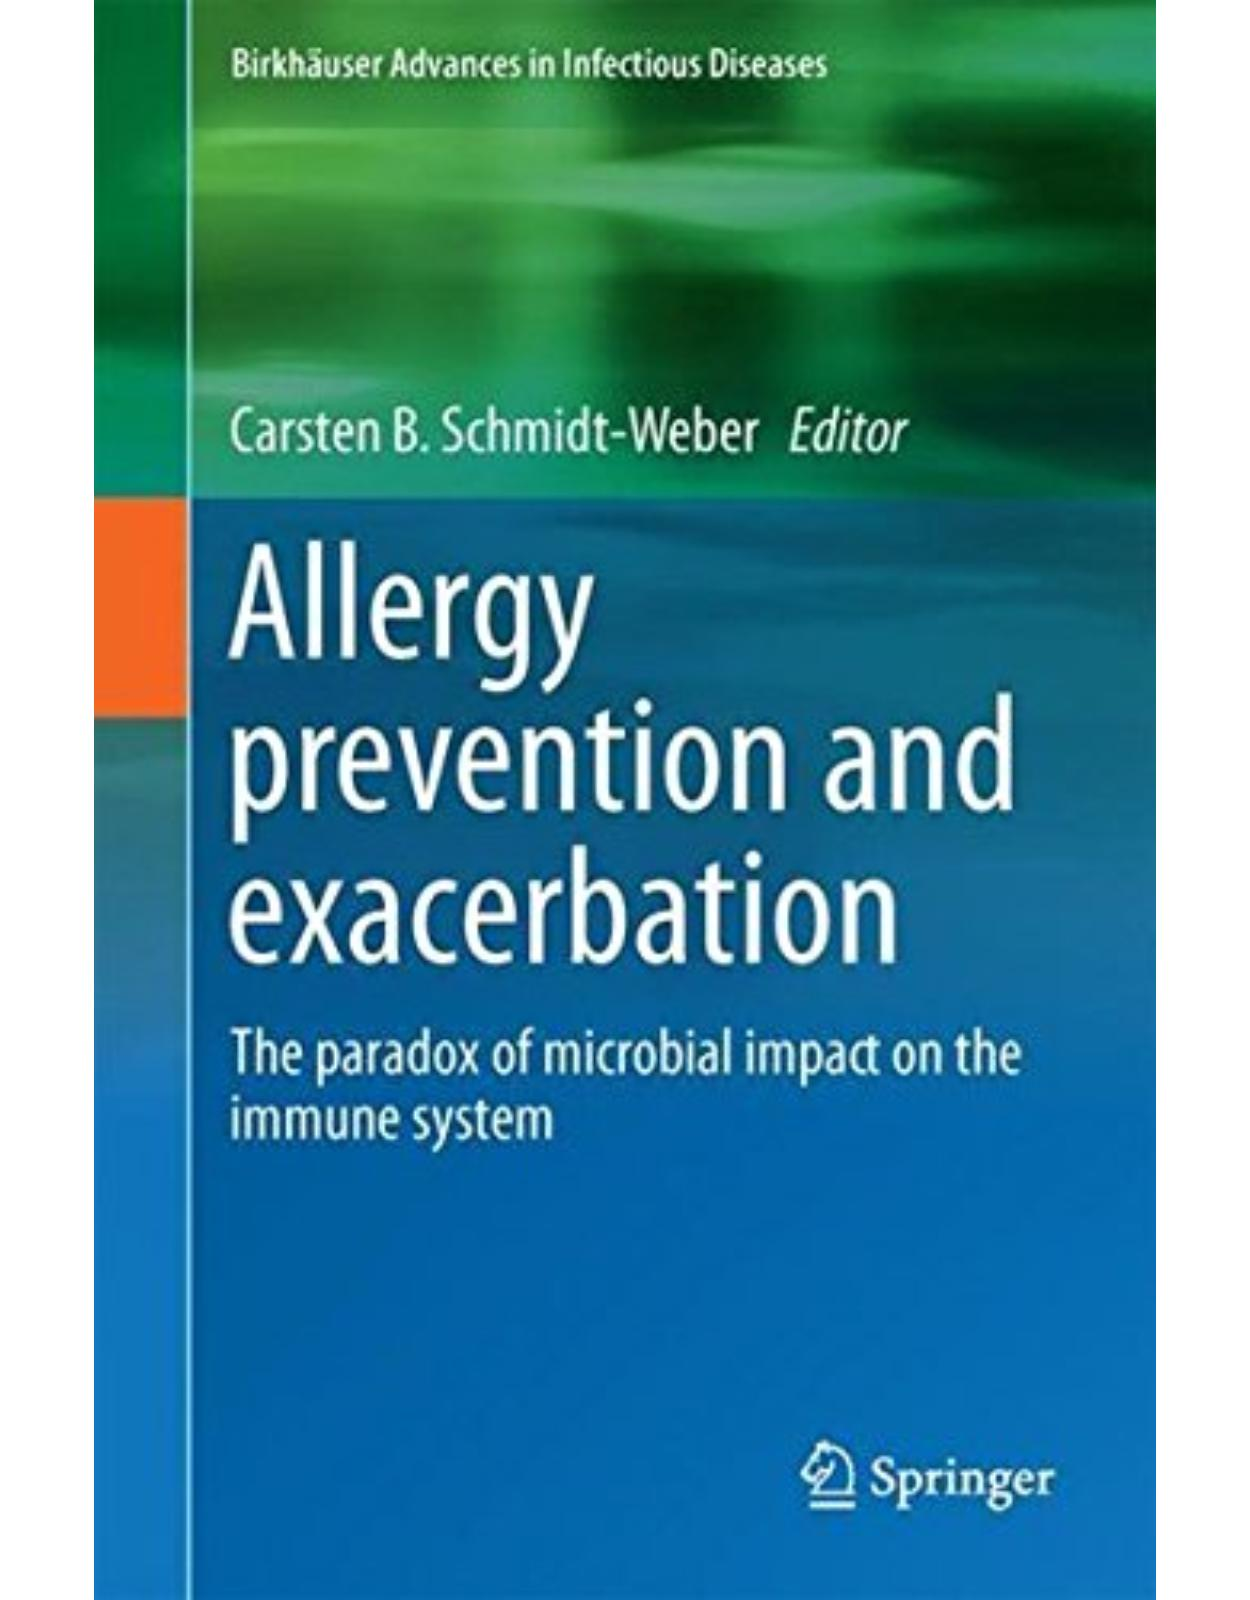 Allergy Prevention and Exacerbation: The Paradox of Microbial Impact on the Immune System (Birkhäuser Advances in Infectious Diseases)